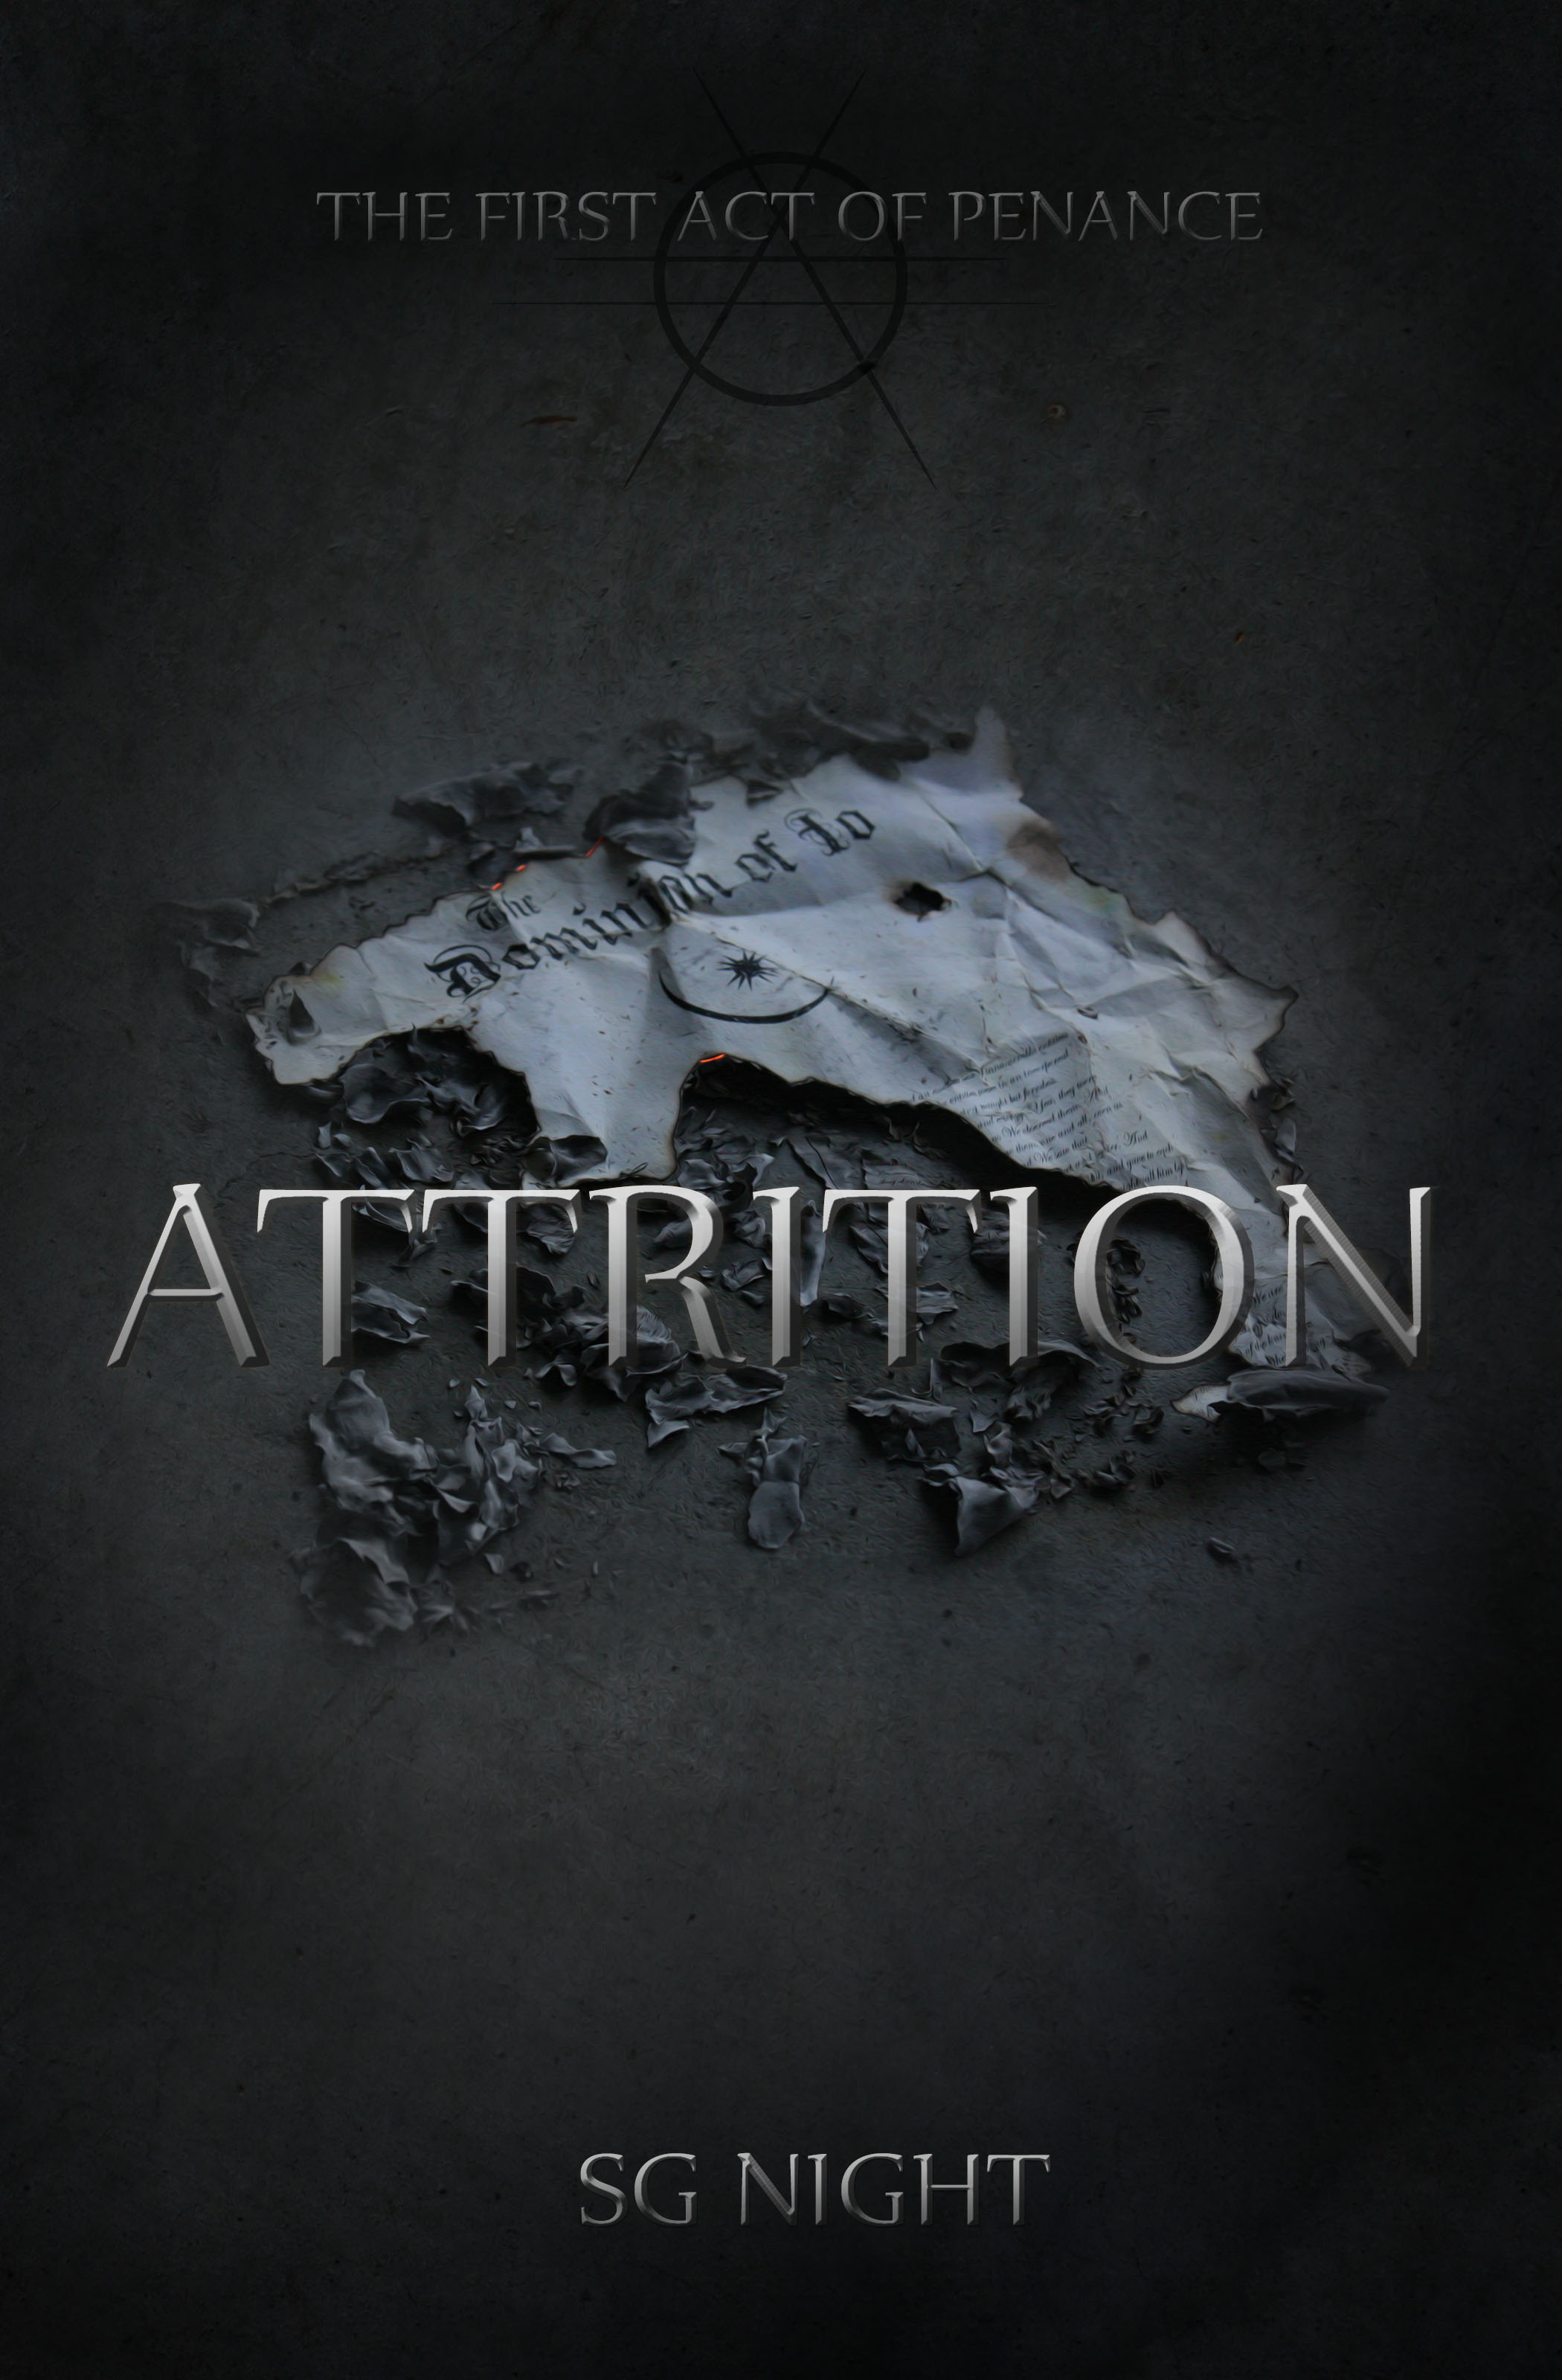 SG Night, Attrition